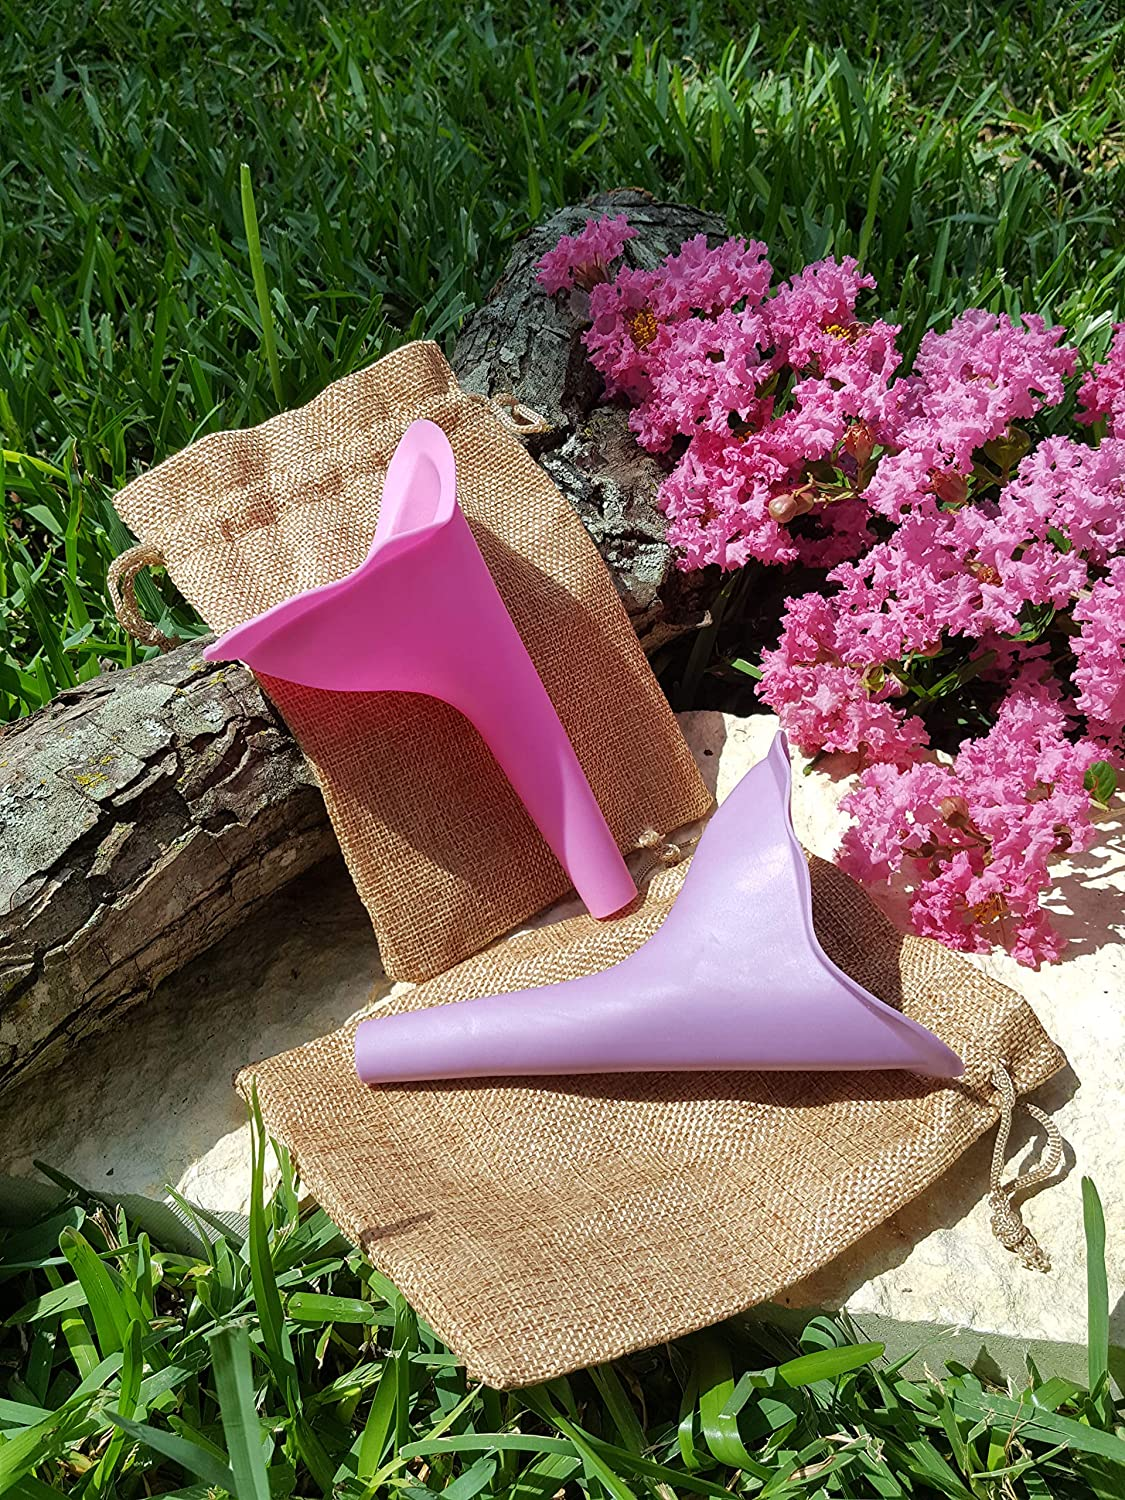 AB Limited Female Urination Device